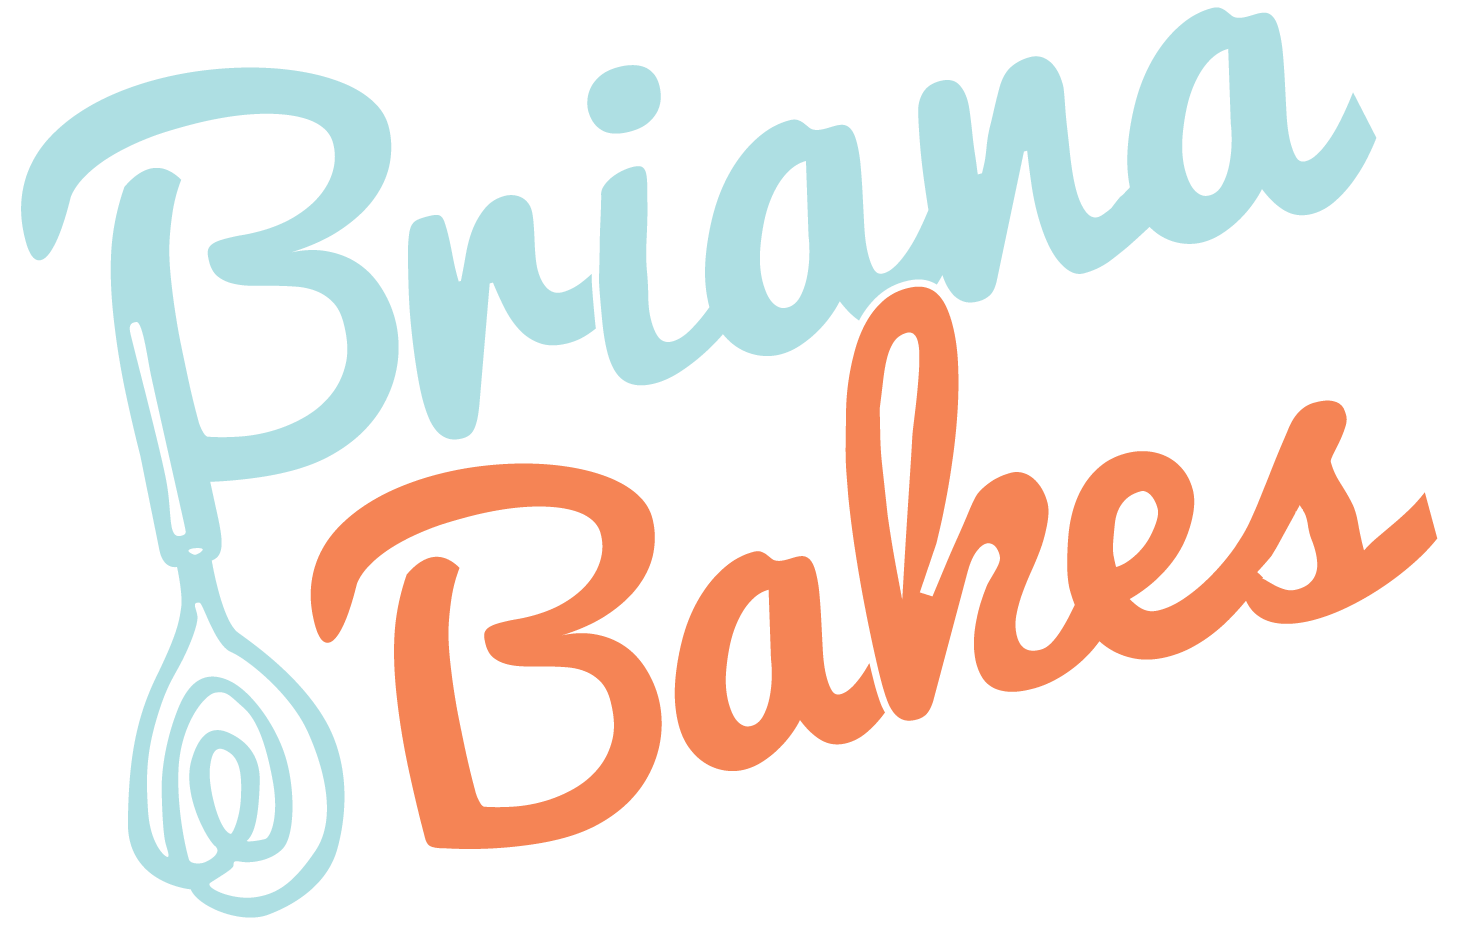 BrianaBakes